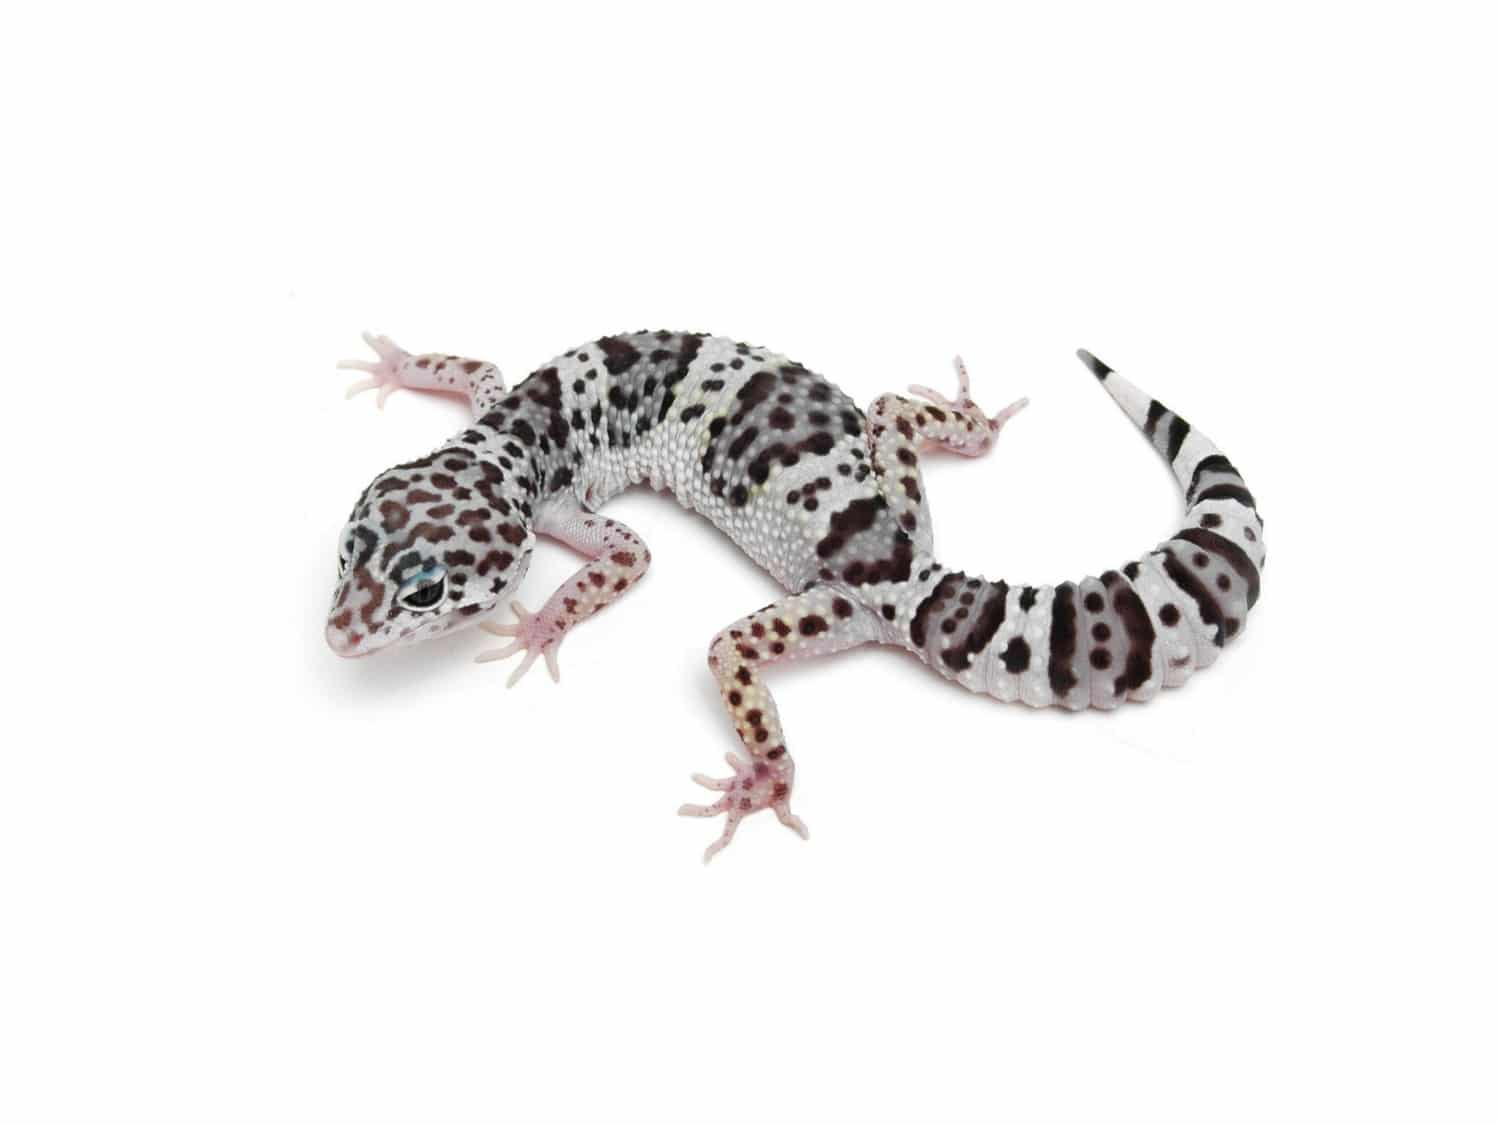 tug snow leopard gecko for sale